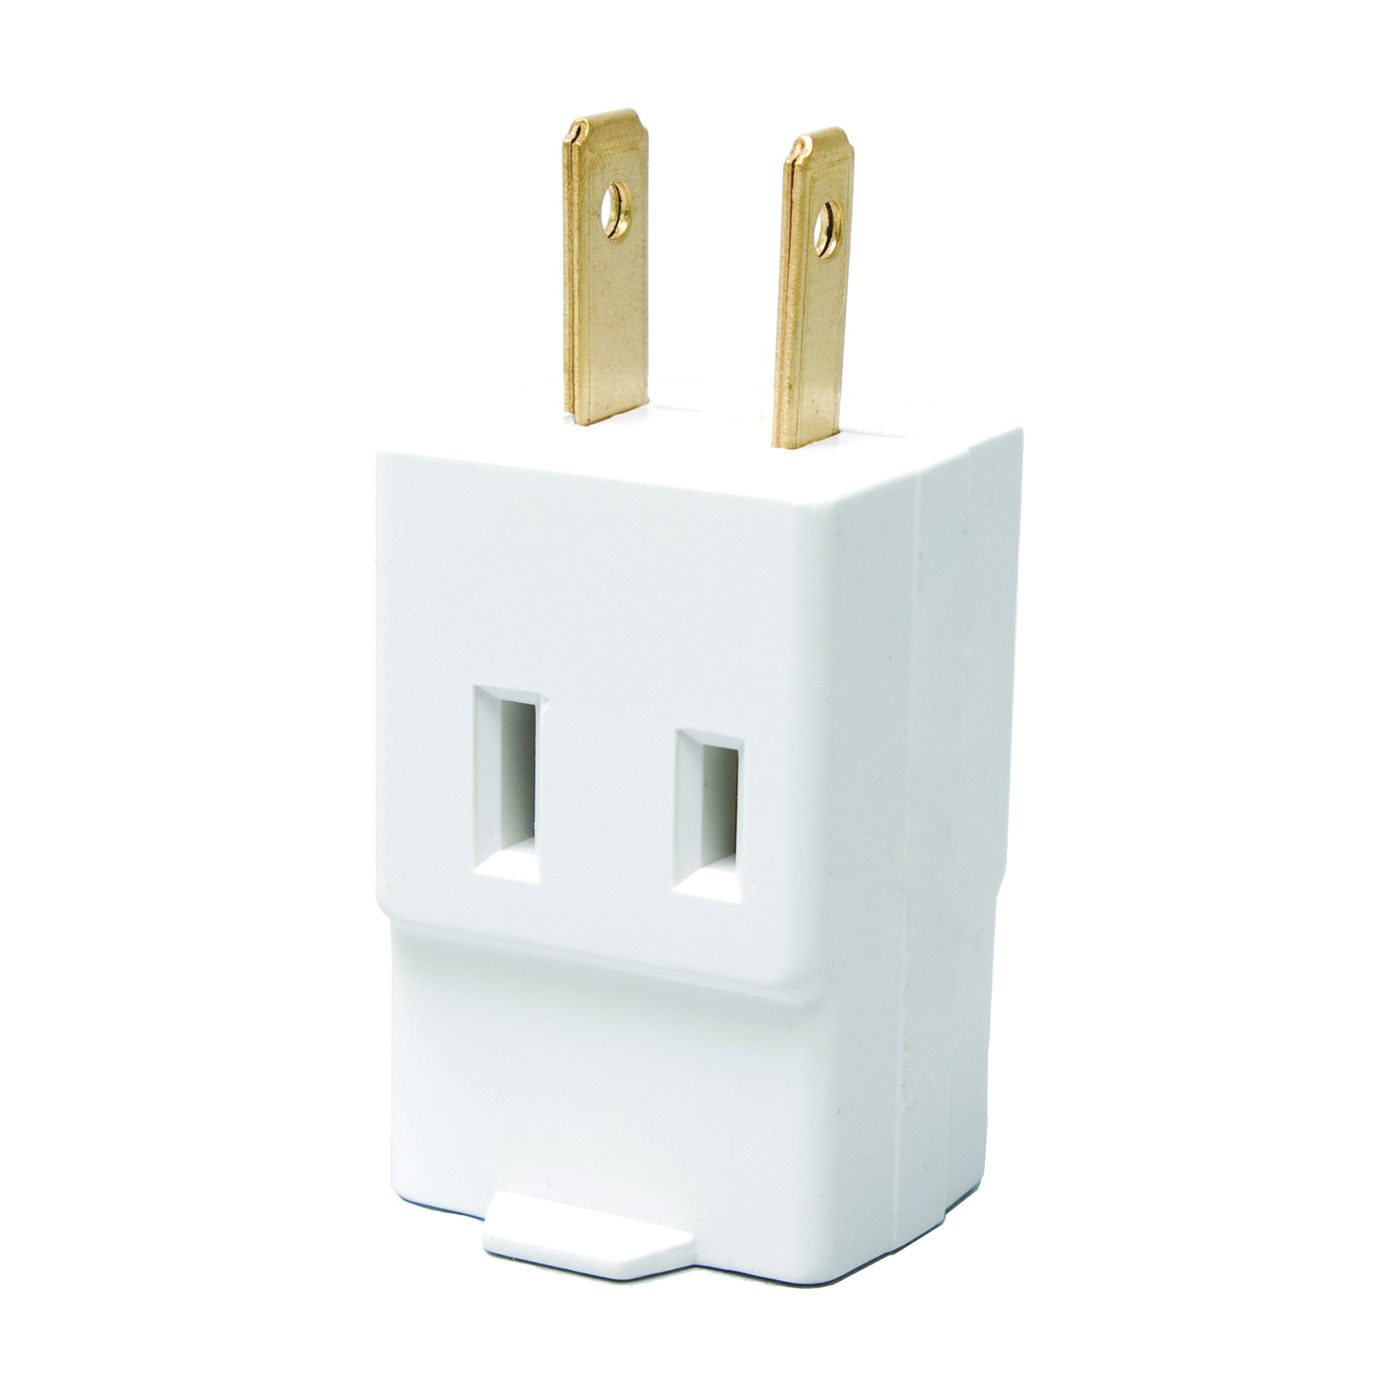 Picture of Eaton Wiring Devices BP4400W Outlet Cube Tap, 2-Pole, 15 A, 125 V, 3-Outlet, NEMA: 1-15R, White